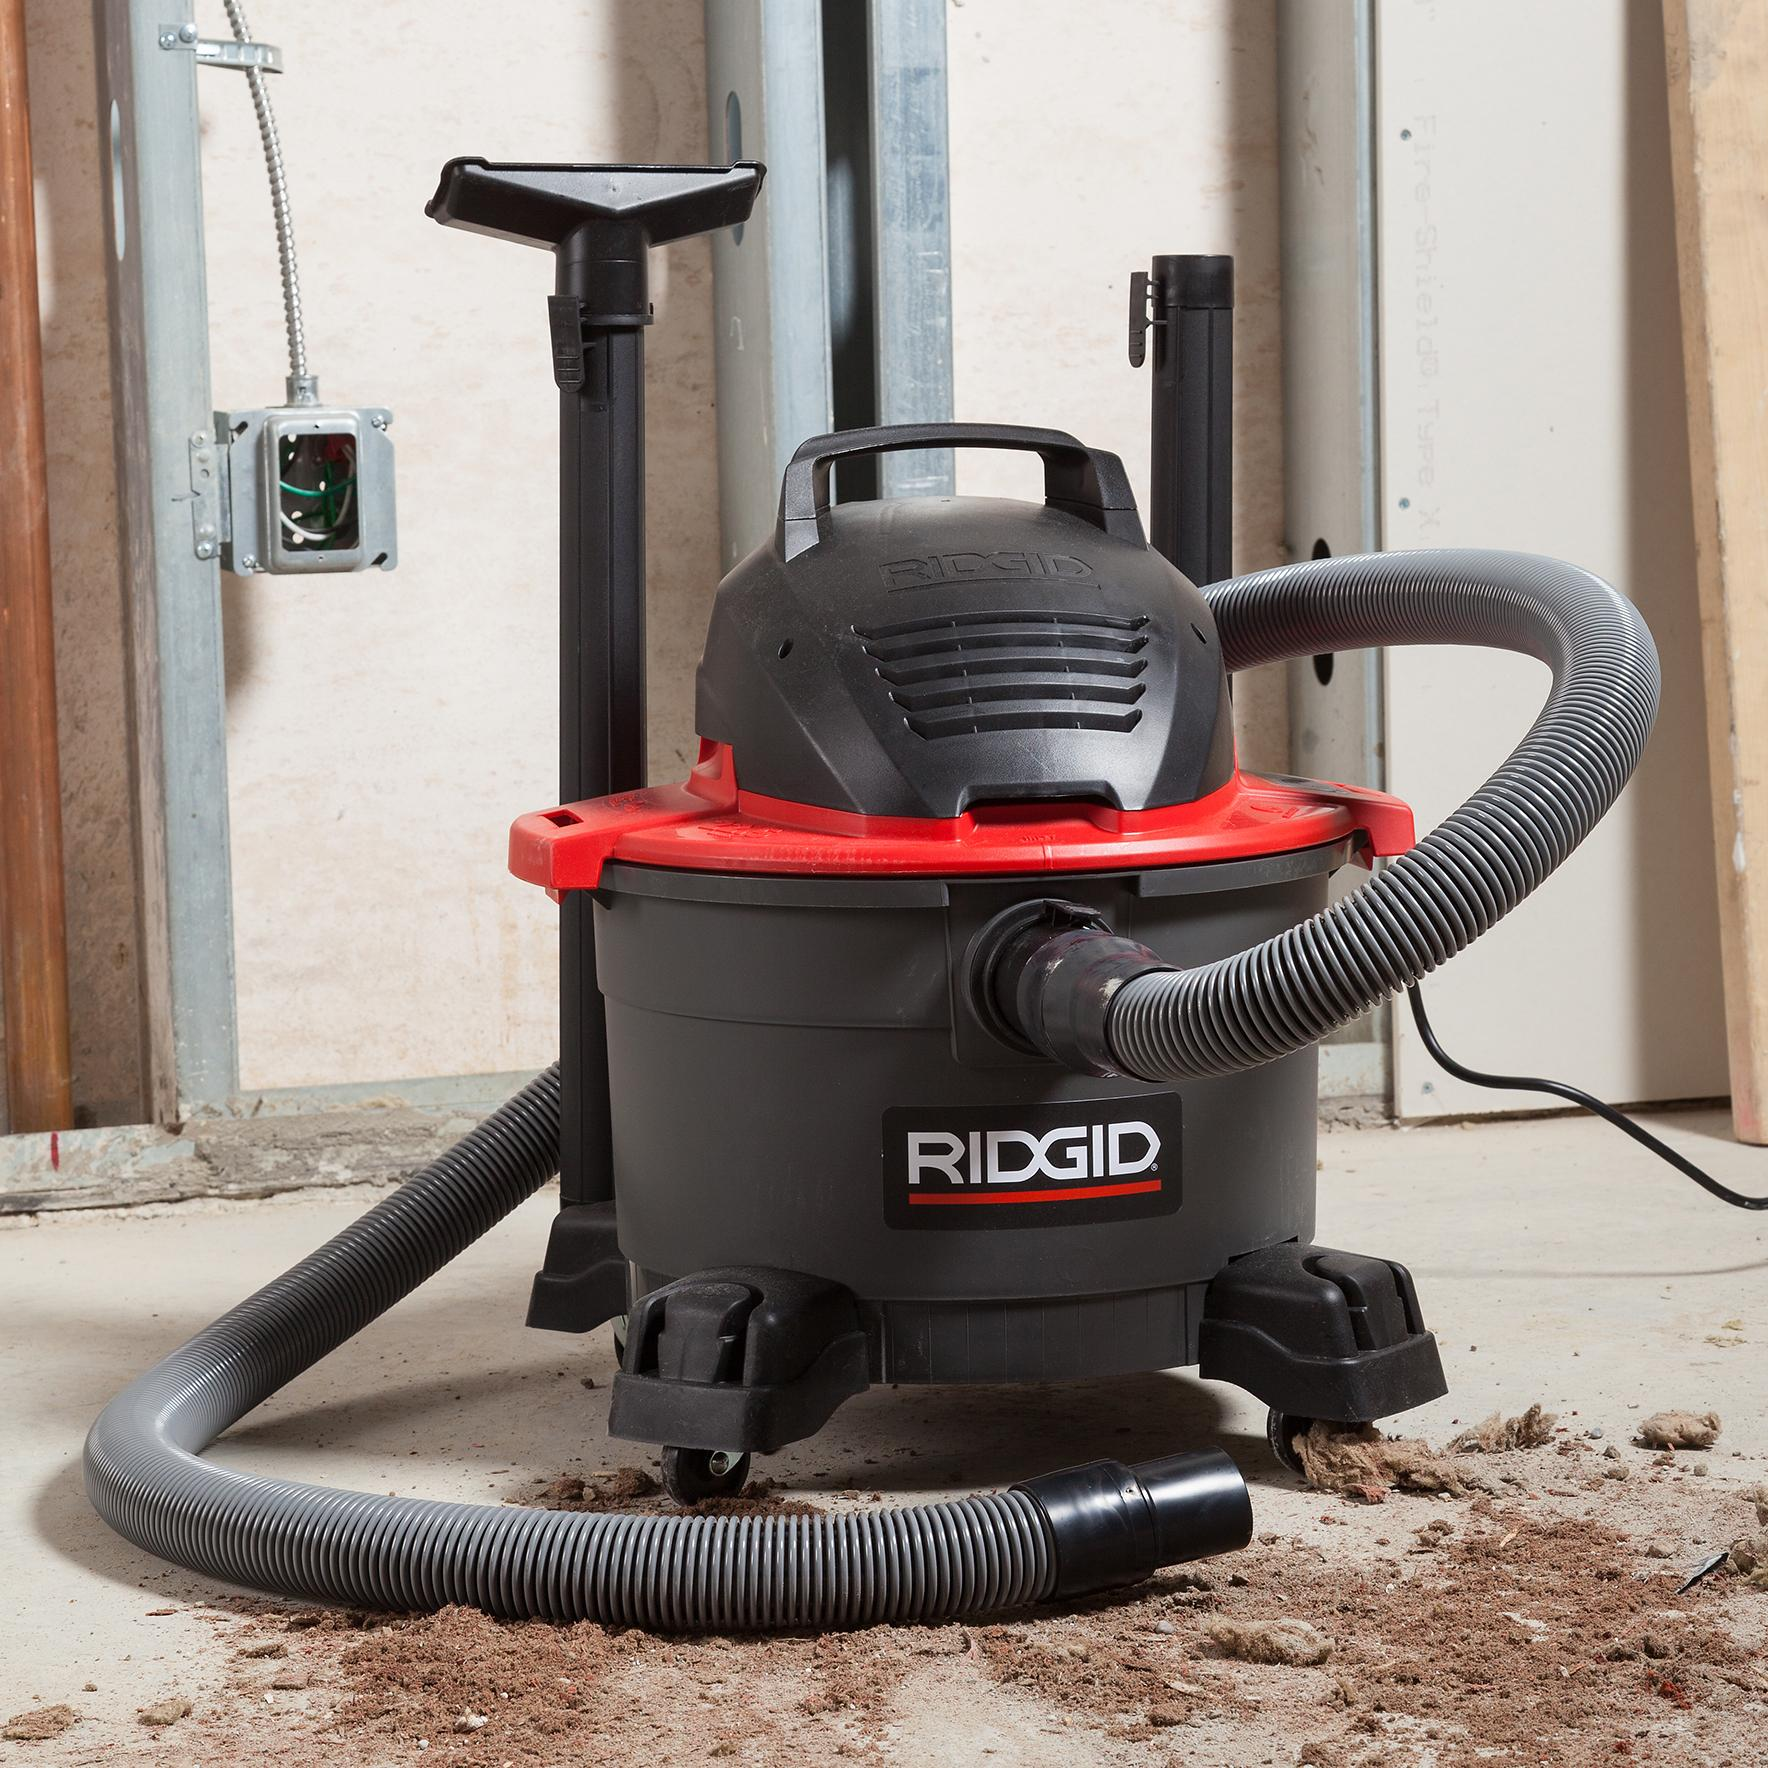 Ridgid Shop Vac Casters >> Amazon.com: RIDGID 50308 6000RV Portable Wet Dry Vacuum, 6 ...